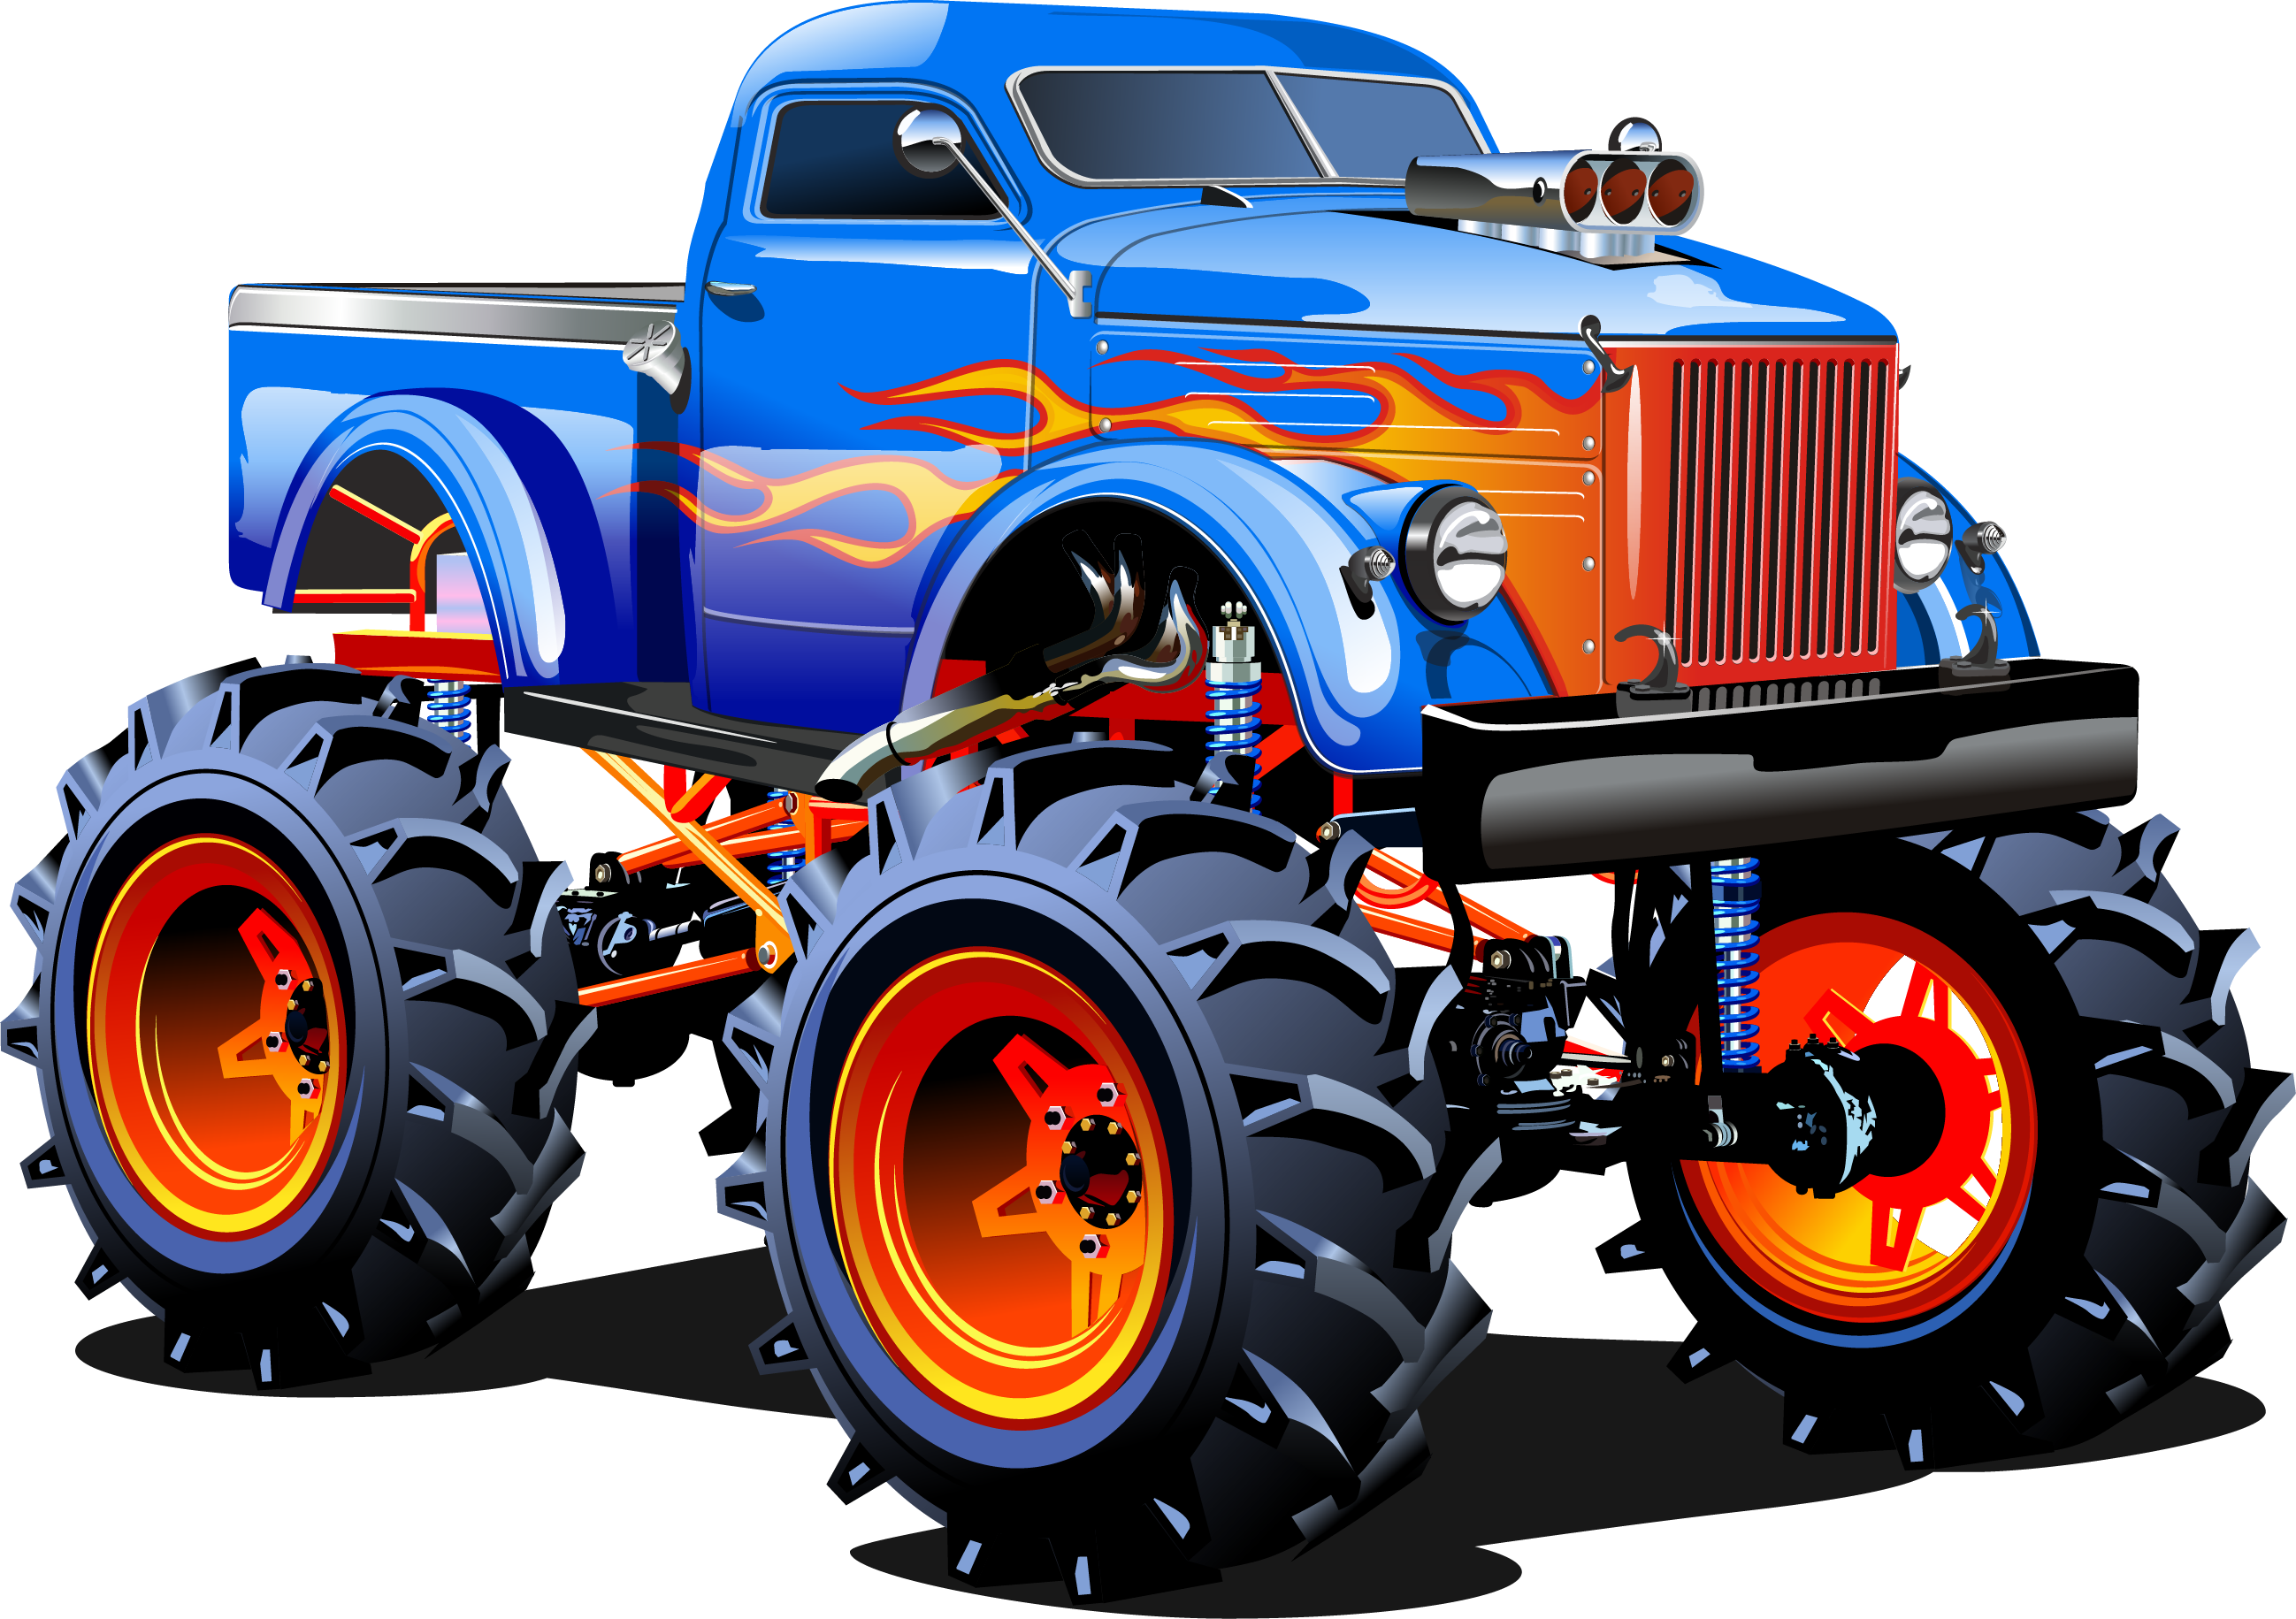 Car stereo clipart svg freeuse stock Car Monster truck Stock photography - SUV 2596*1831 transprent Png ... svg freeuse stock